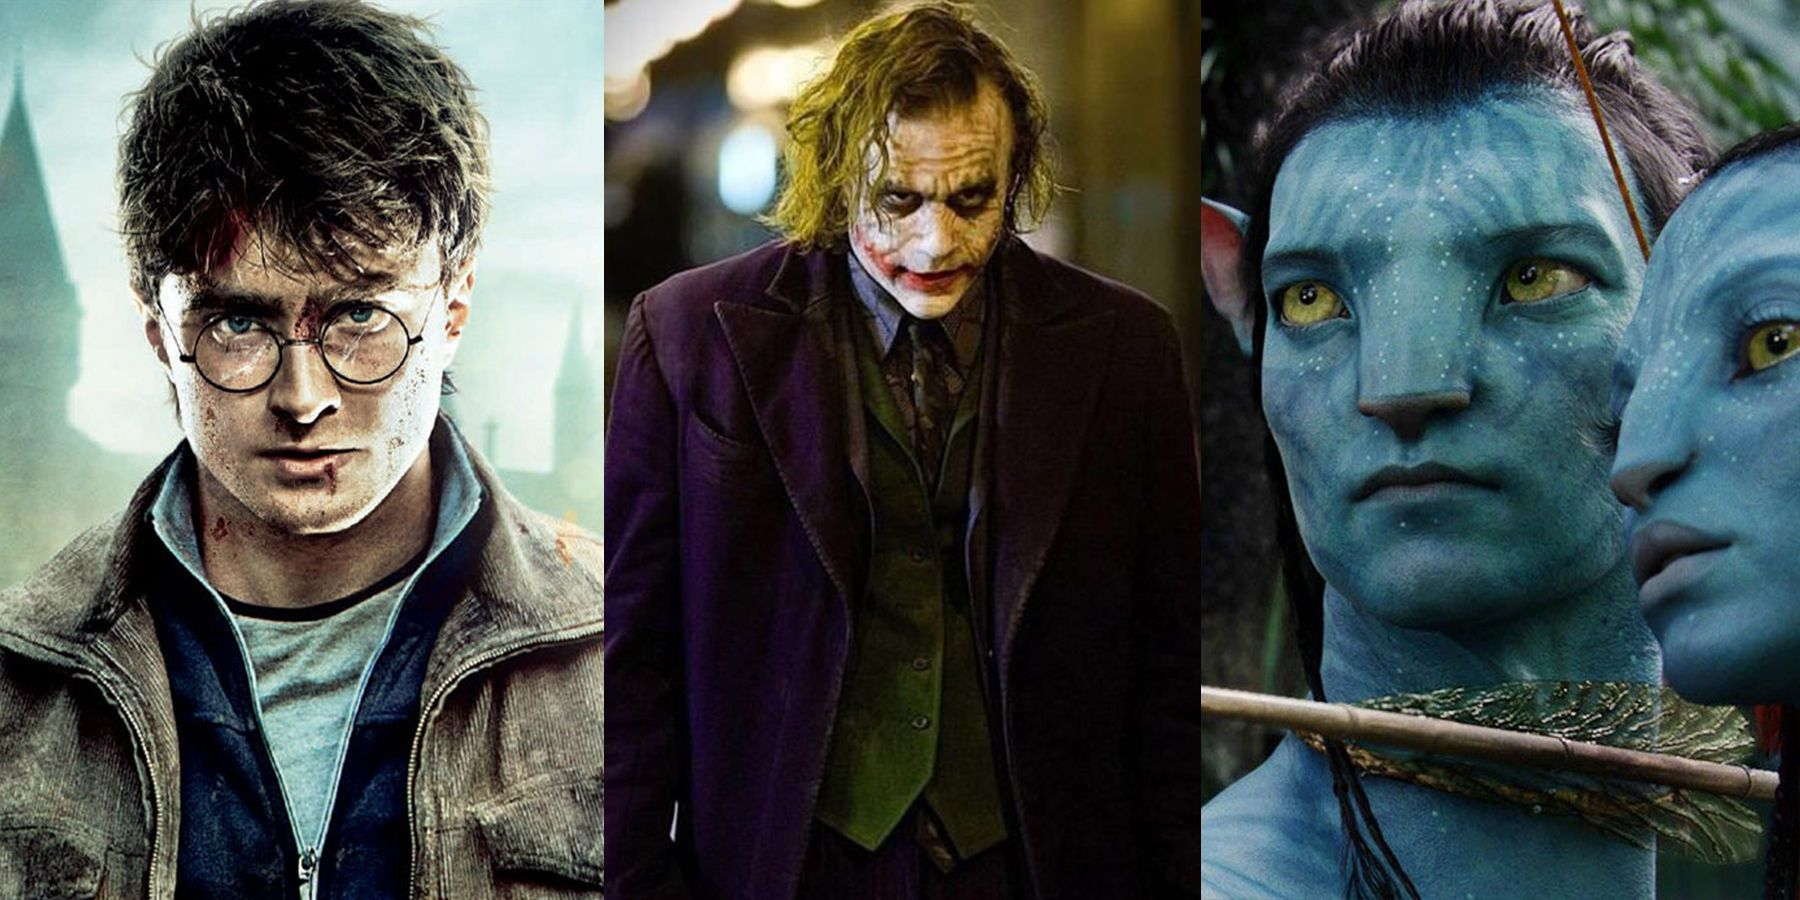 The 15 Best Movies That Have Earned $1 Billion At The Box Office